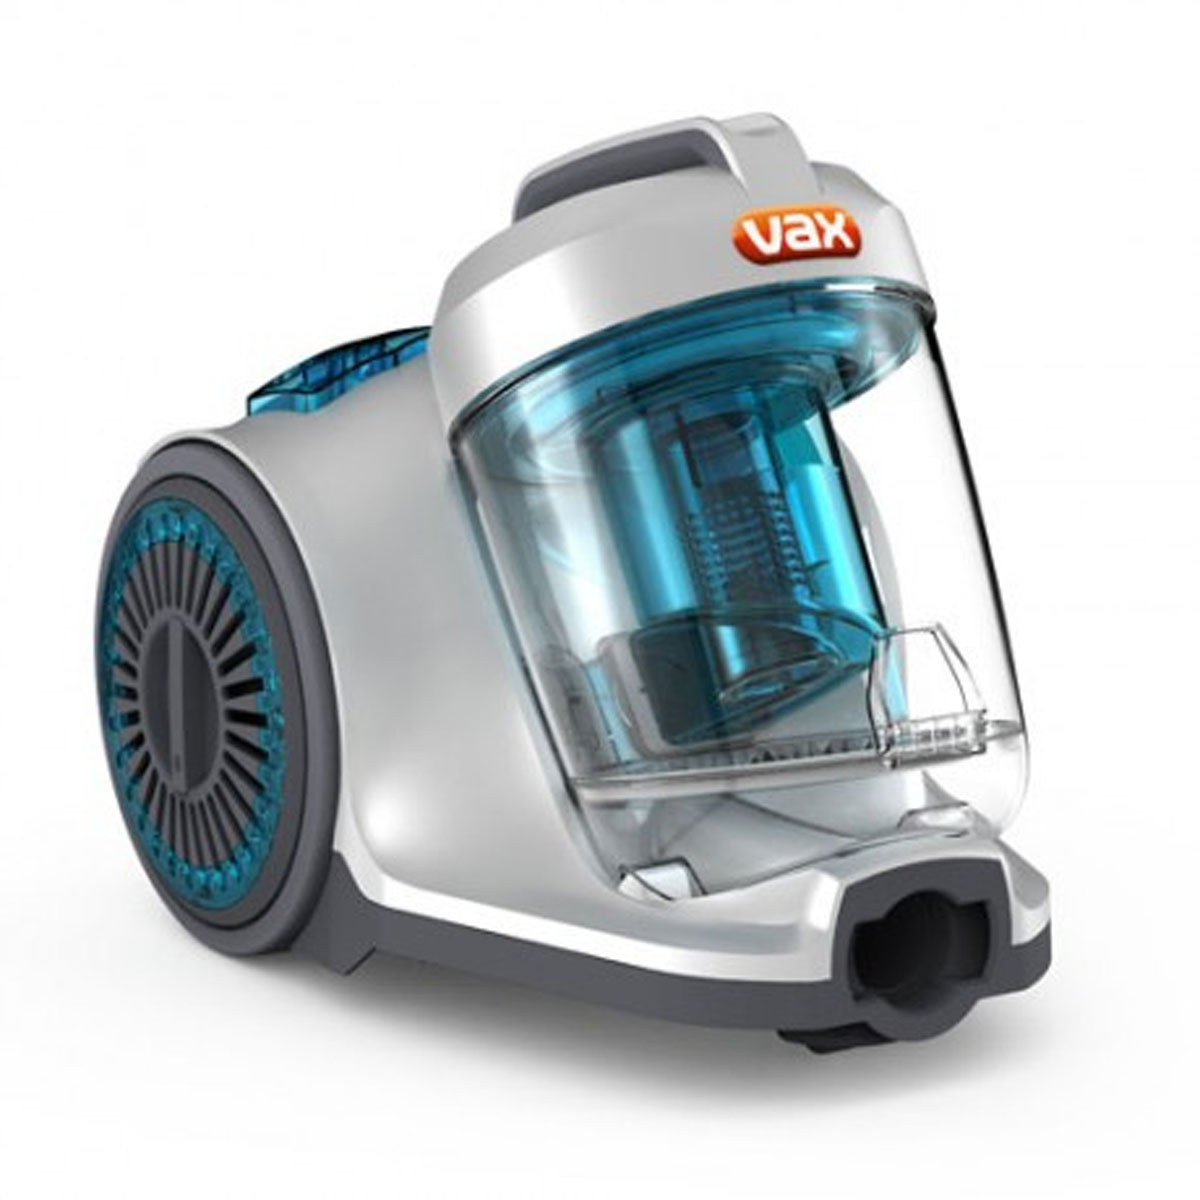 Vax VX28 Pet Barrel Vacuum Cleaner